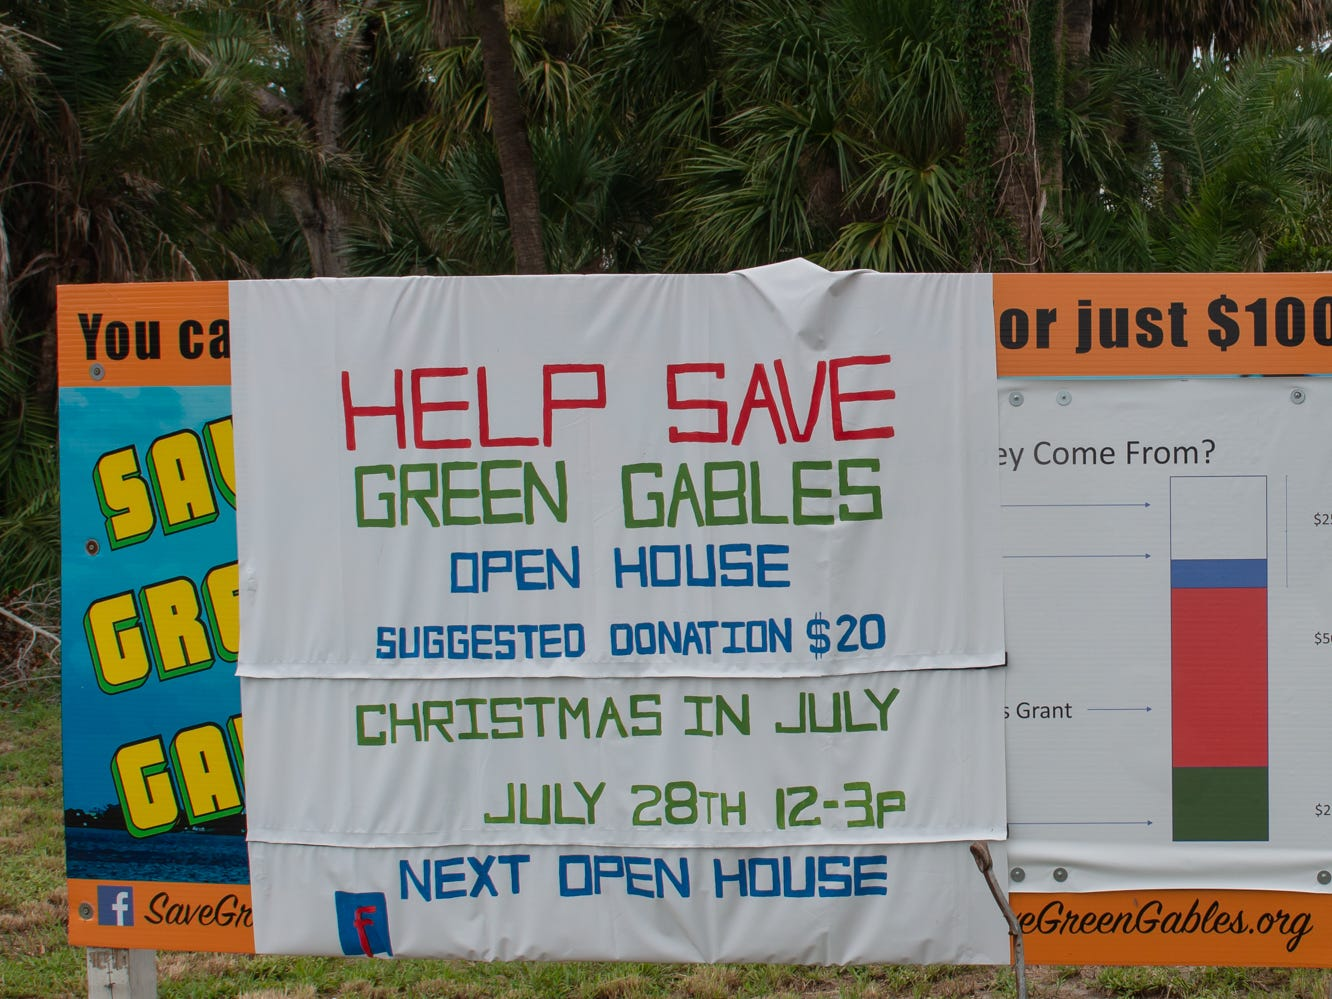 Christmas in July event, which raised money to restore the Green Gables Victorian house in Melbourne.